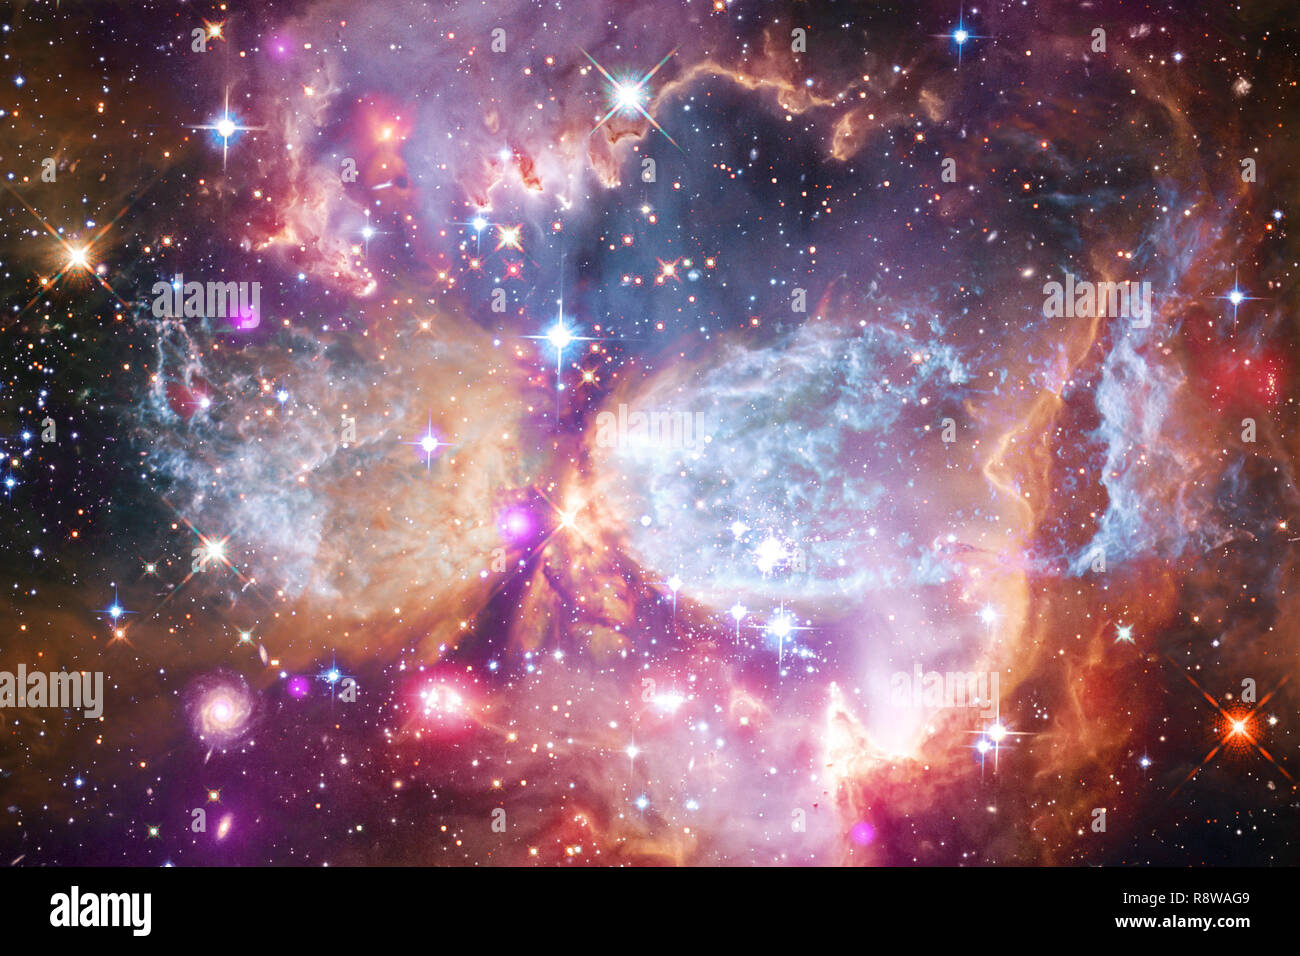 Nebulae an interstellar cloud of star dust. Elements of this image furnished by NASA - Stock Image